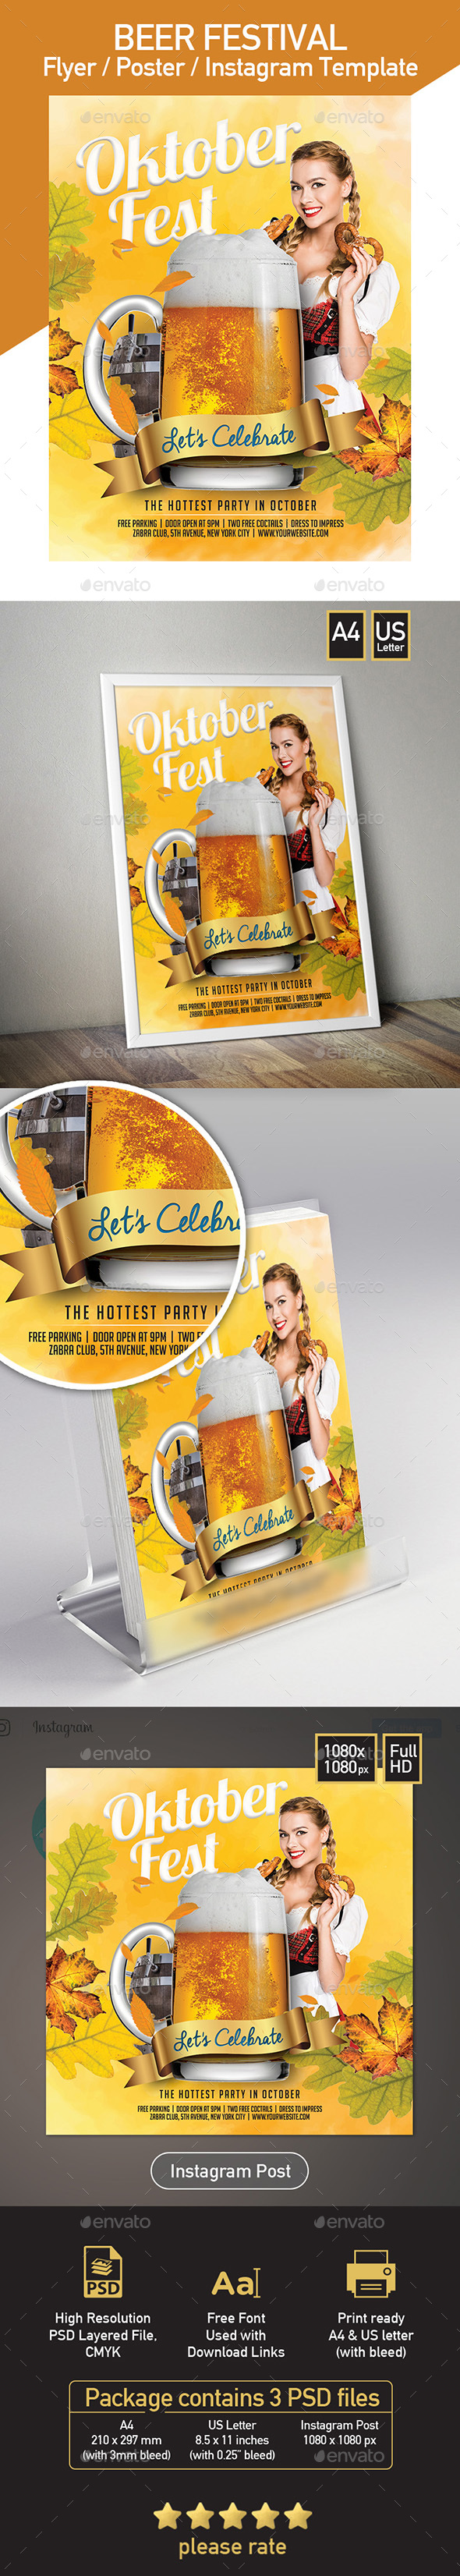 Beer Festival - Oktoberfest - Set of 3 Templates - Events Flyers